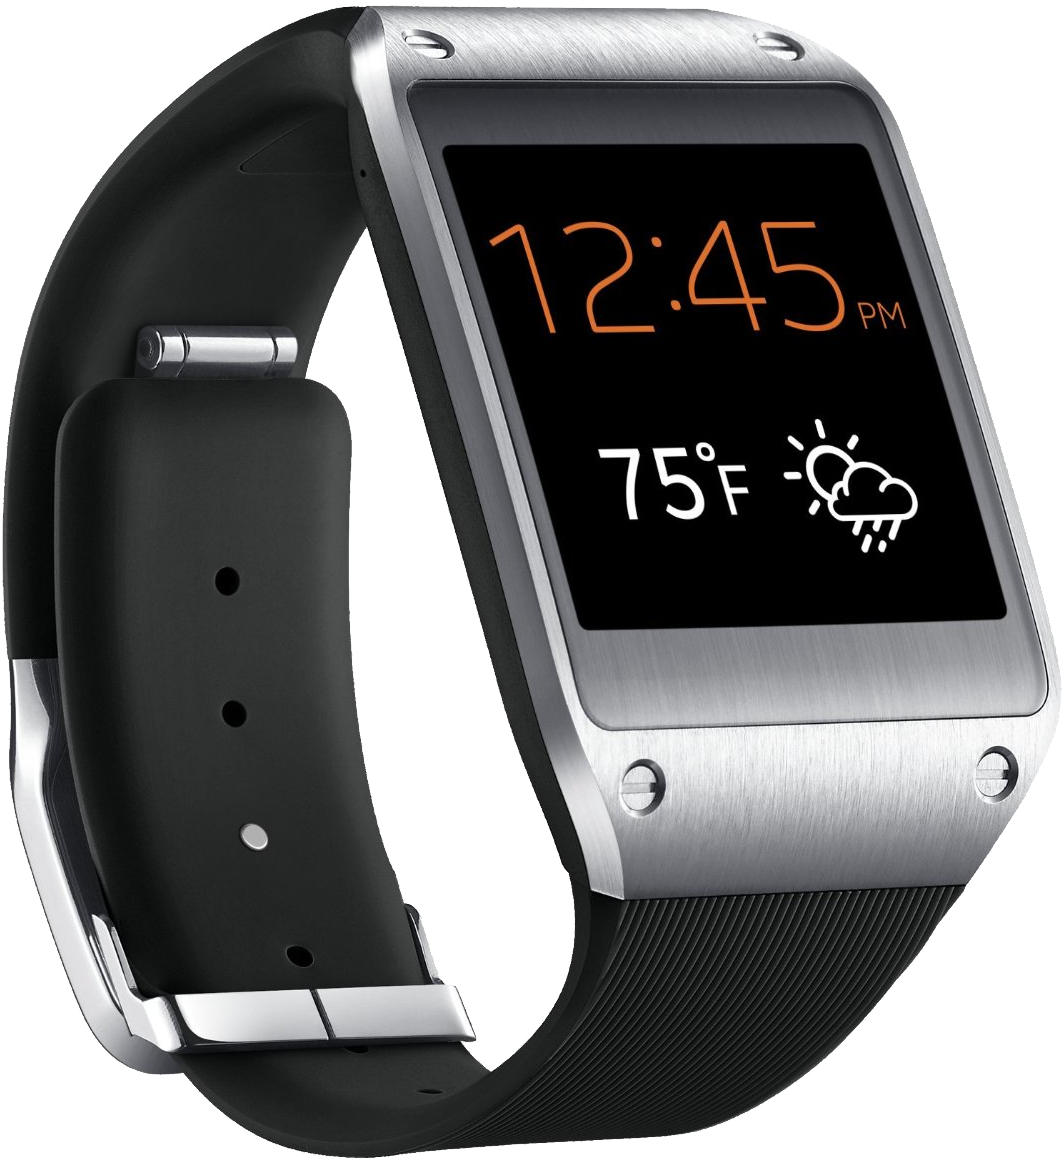 Gear Watches Samsung Smartwatch Camera Galaxy Smart PNG Image